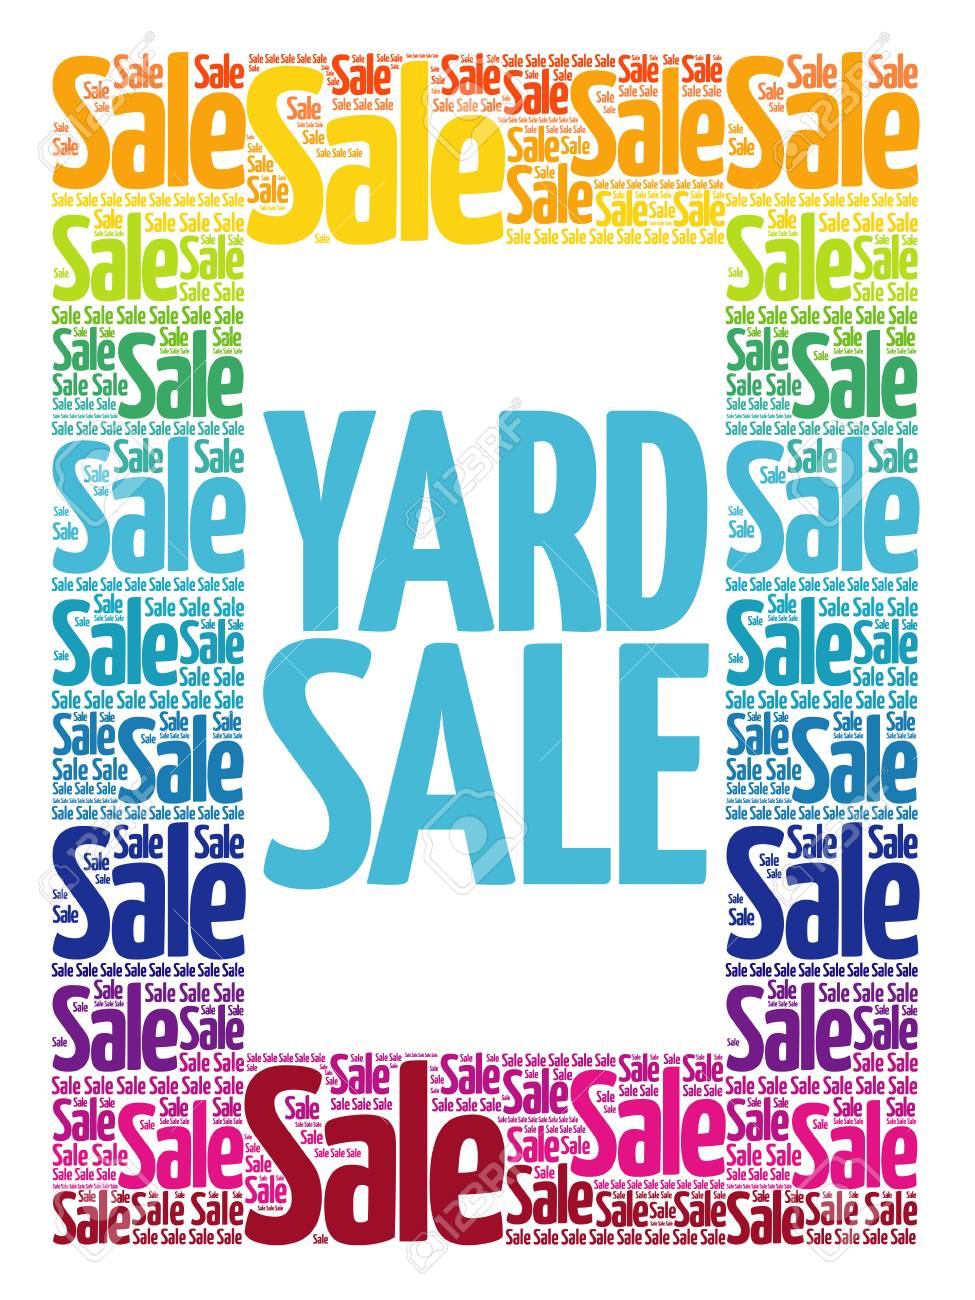 Yard Sale Images Free : images, Words, Cloud,, Business, Concept, Background, Royalty, Cliparts,, Vectors,, Stock, Illustration., Image, 93778032.